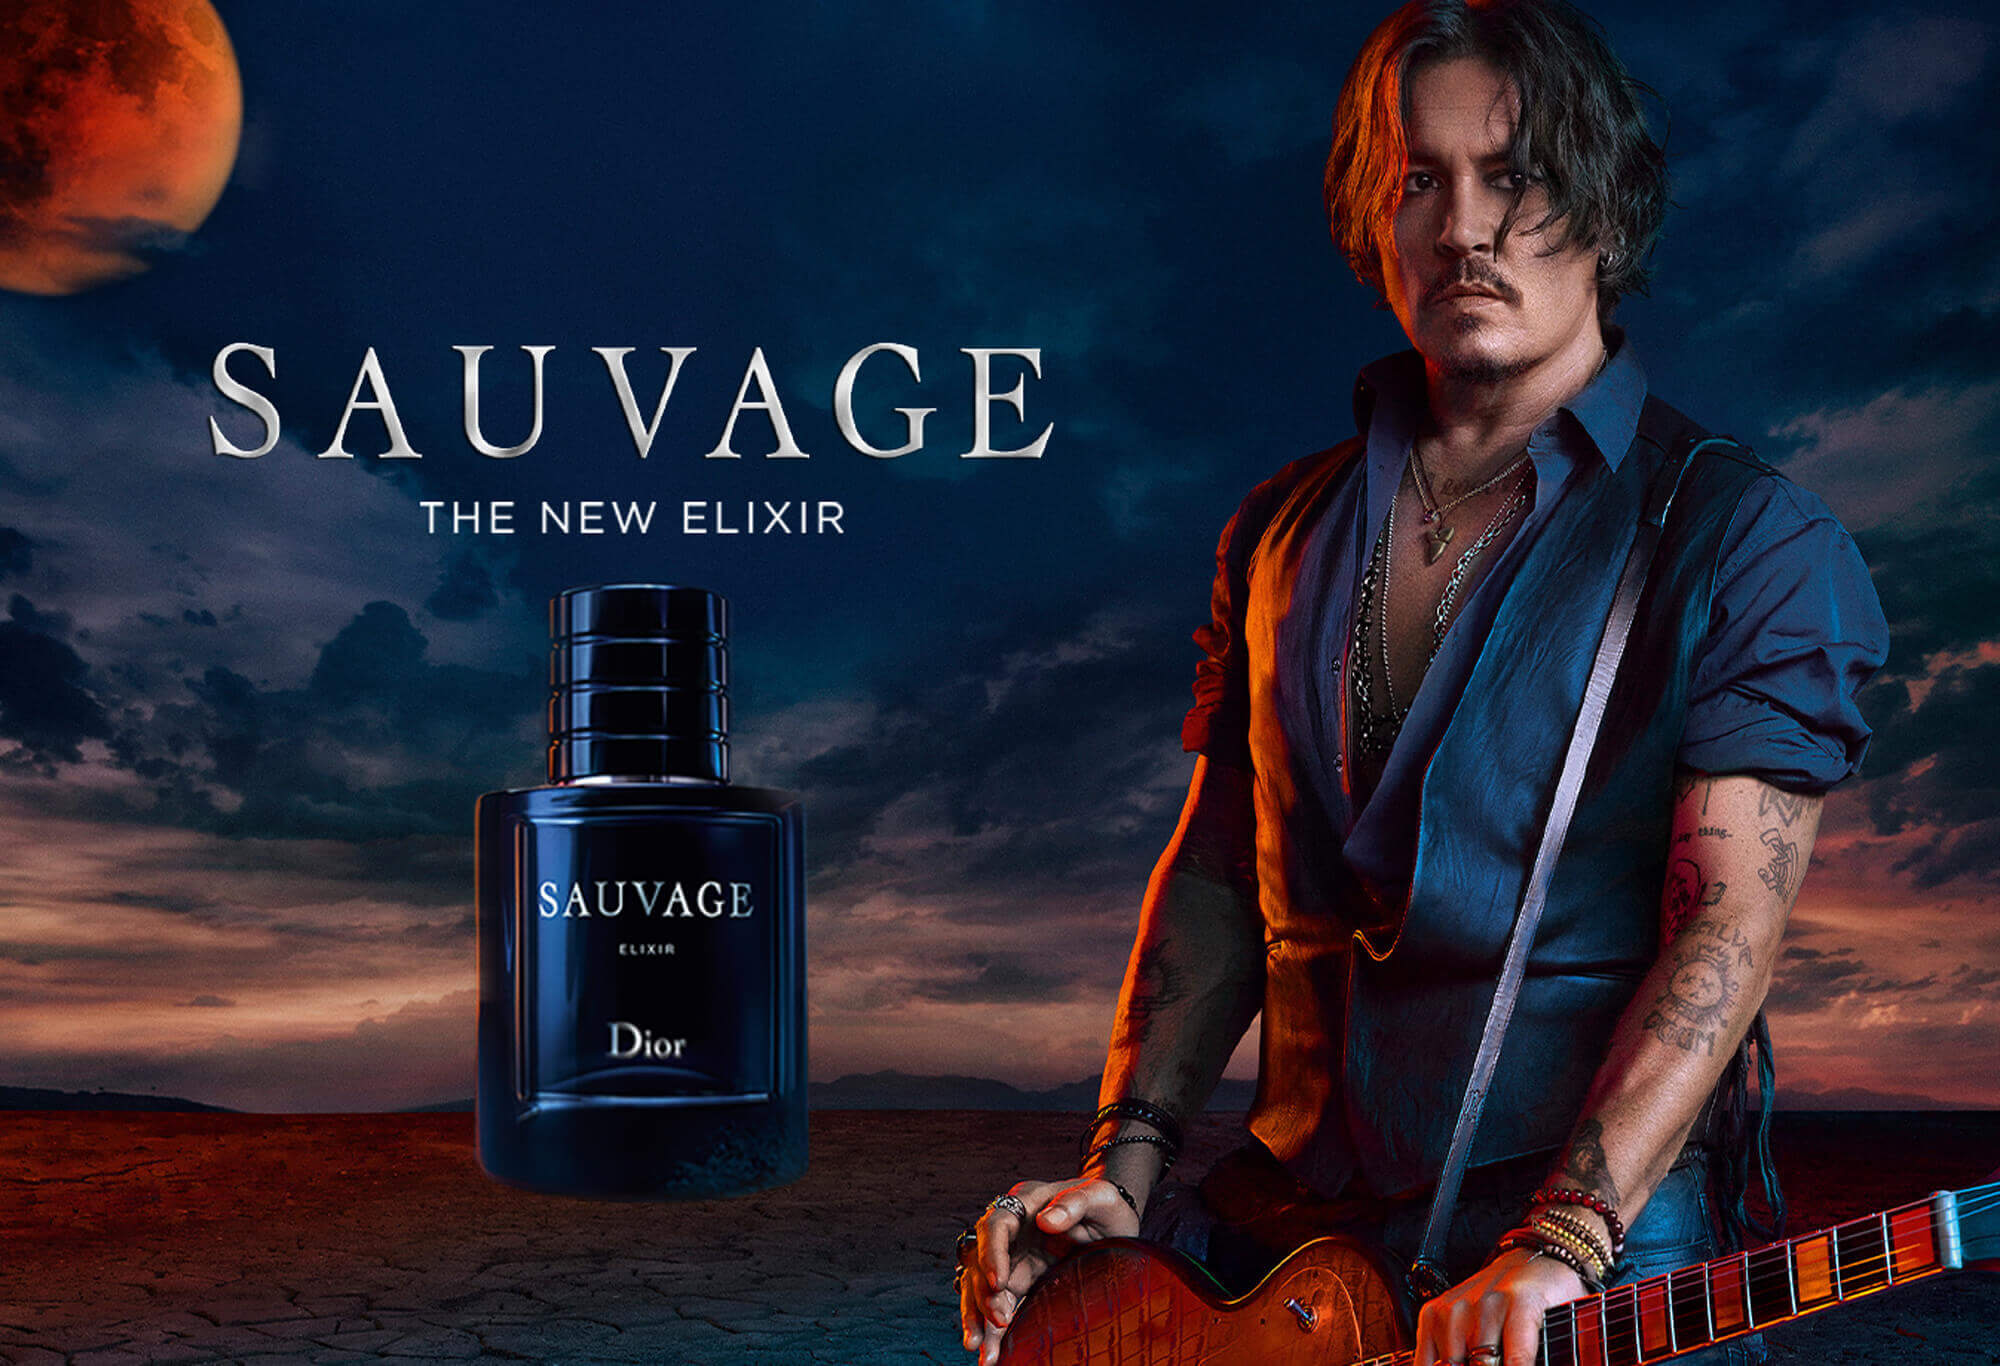 Sauvage The New Elixir